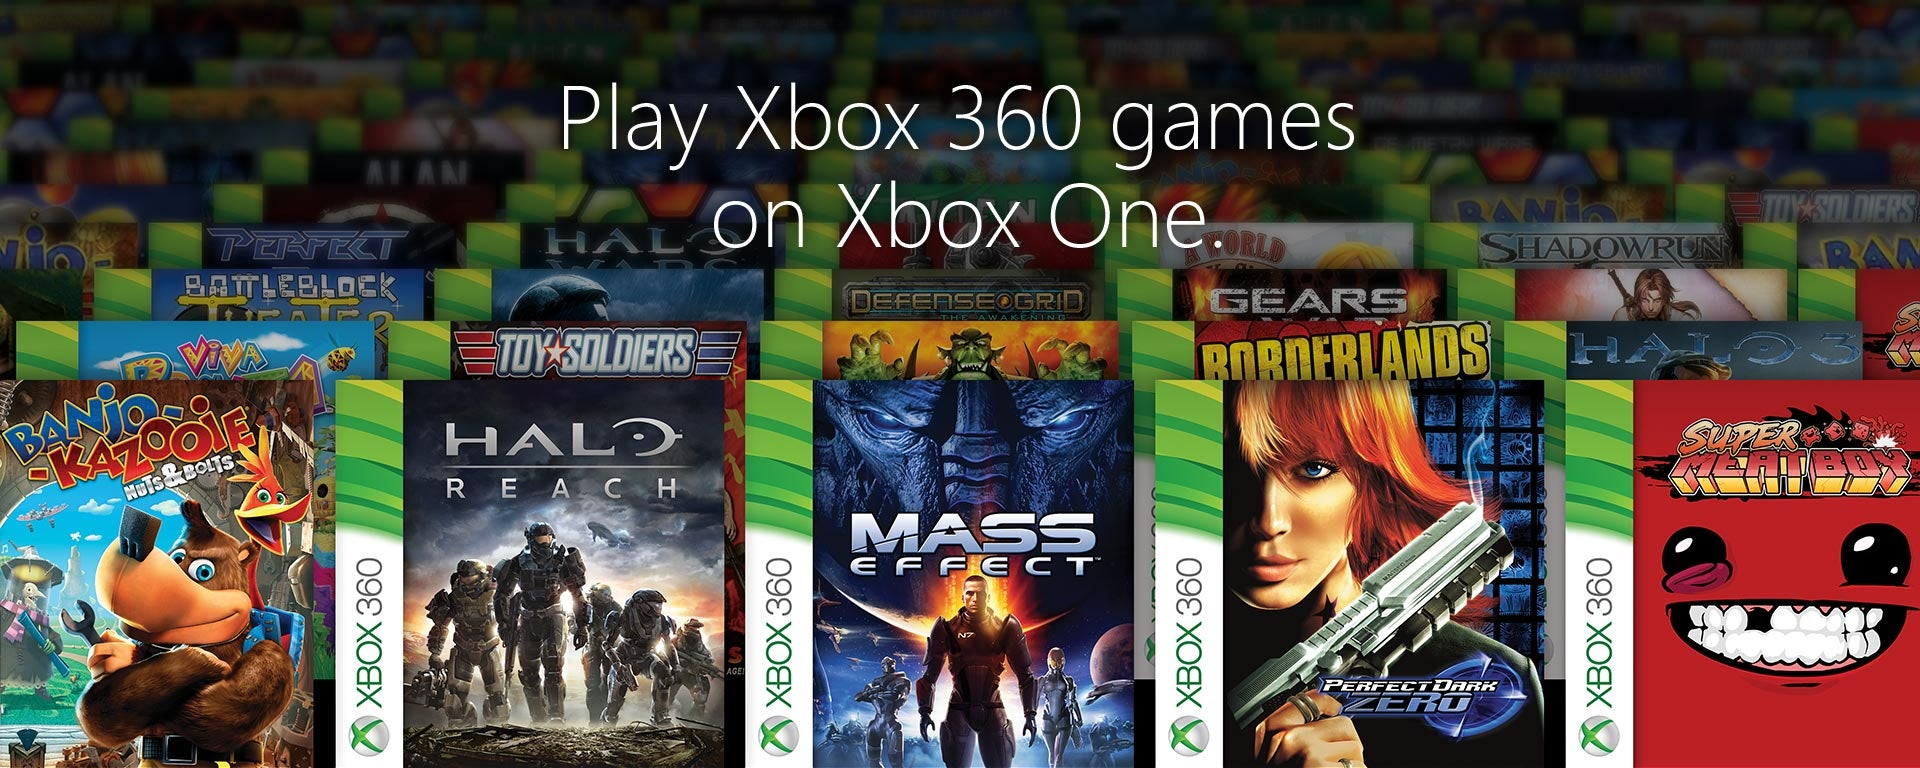 We Asked Publishers Which 360 Games They will Make Playable On Xbox One